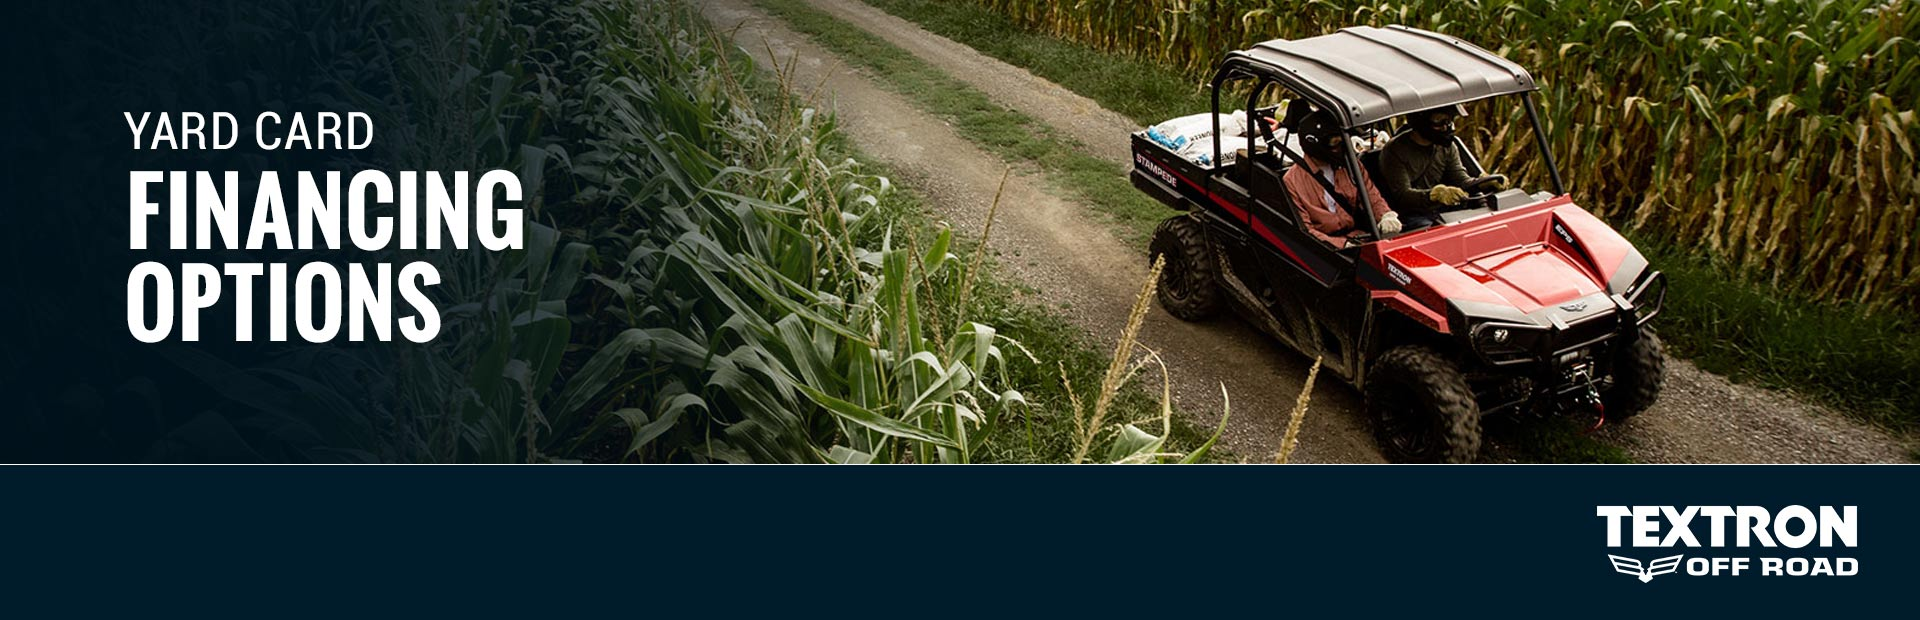 Textron Off Road: Yard Card Financing Programs